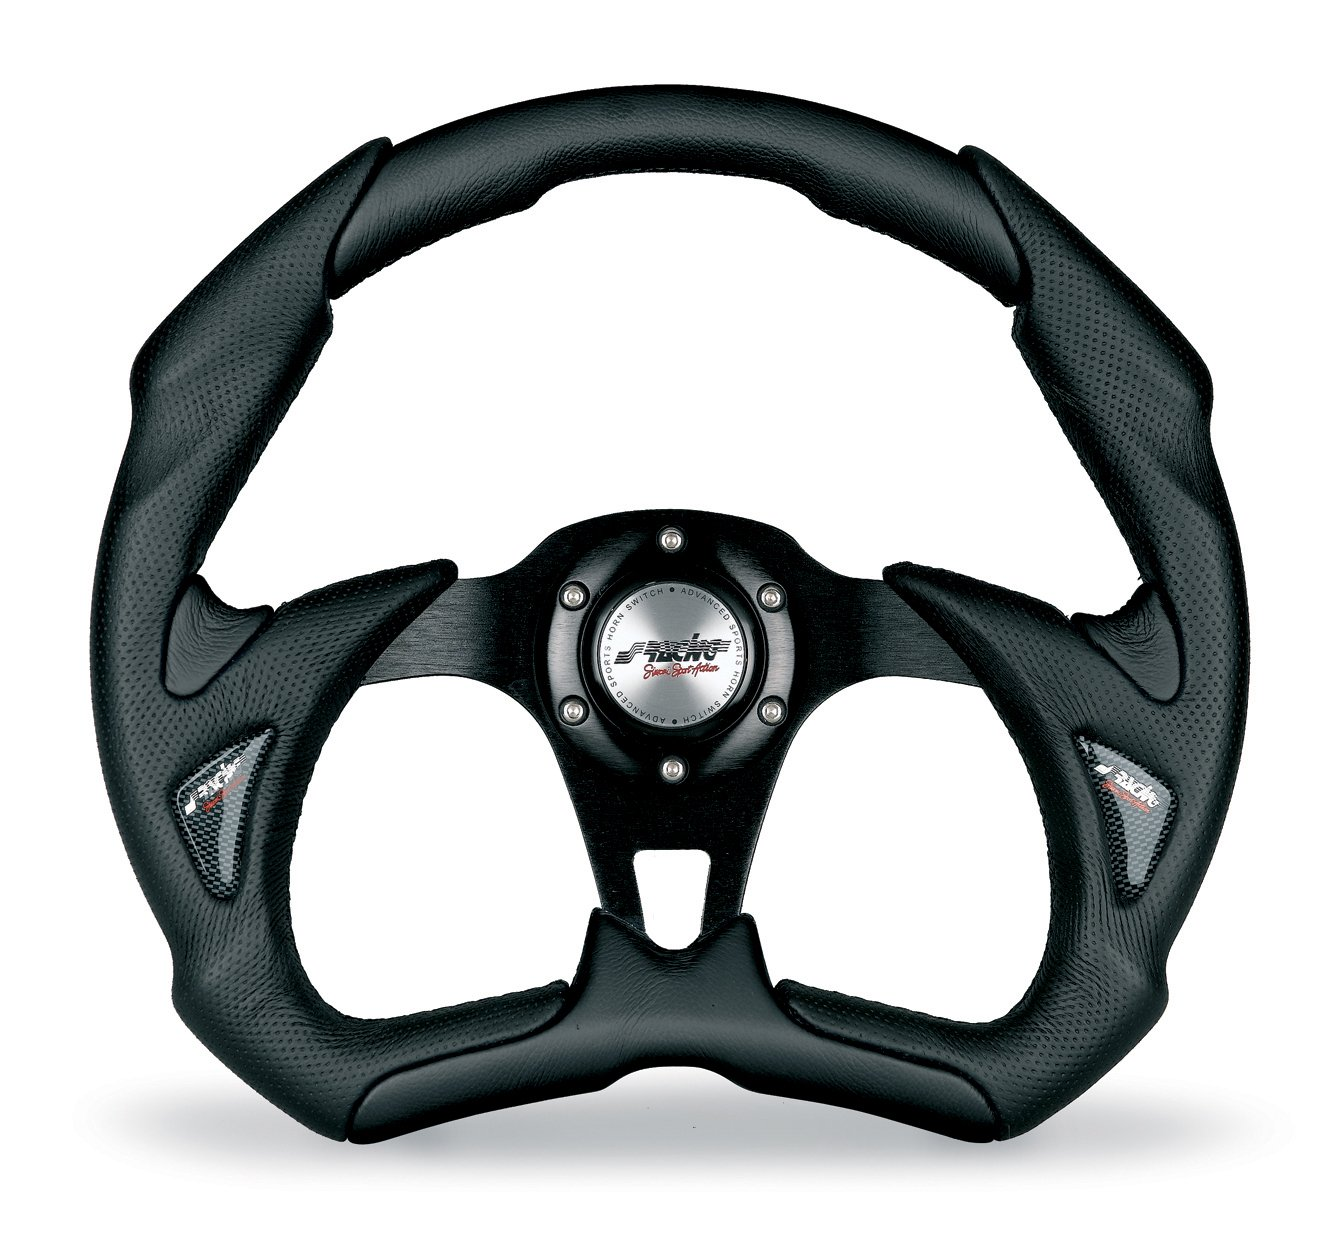 Simoni Racing X5350PUN/P Universal Steering Wheel, Black